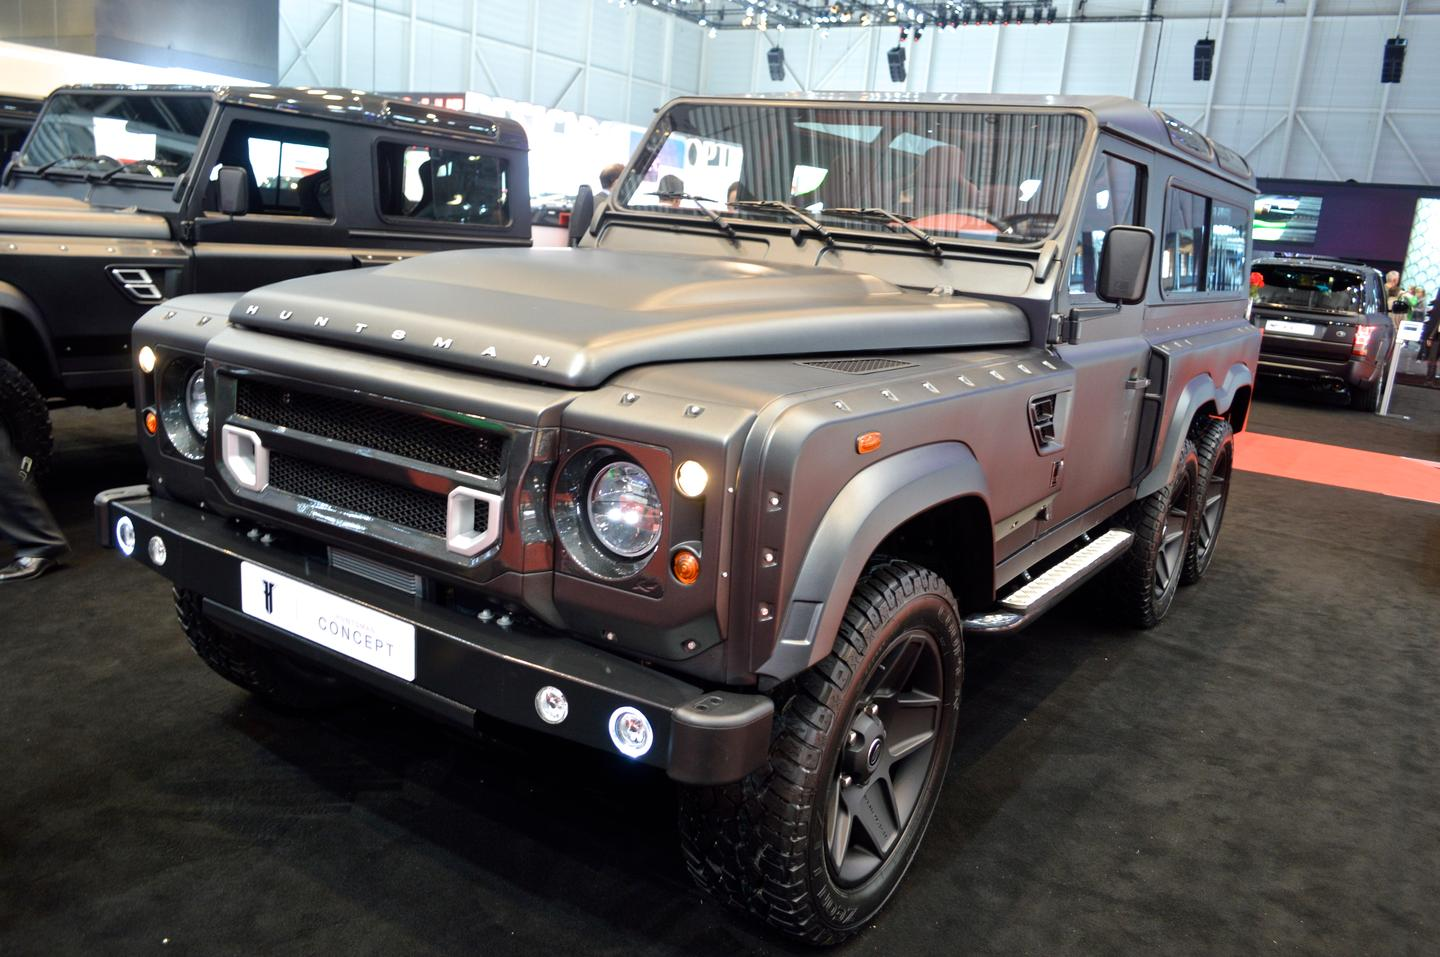 The Land Rover Defender 110 is transformed into the Flying Huntsman (Photo: C.C. Weiss/Gizmag.com)